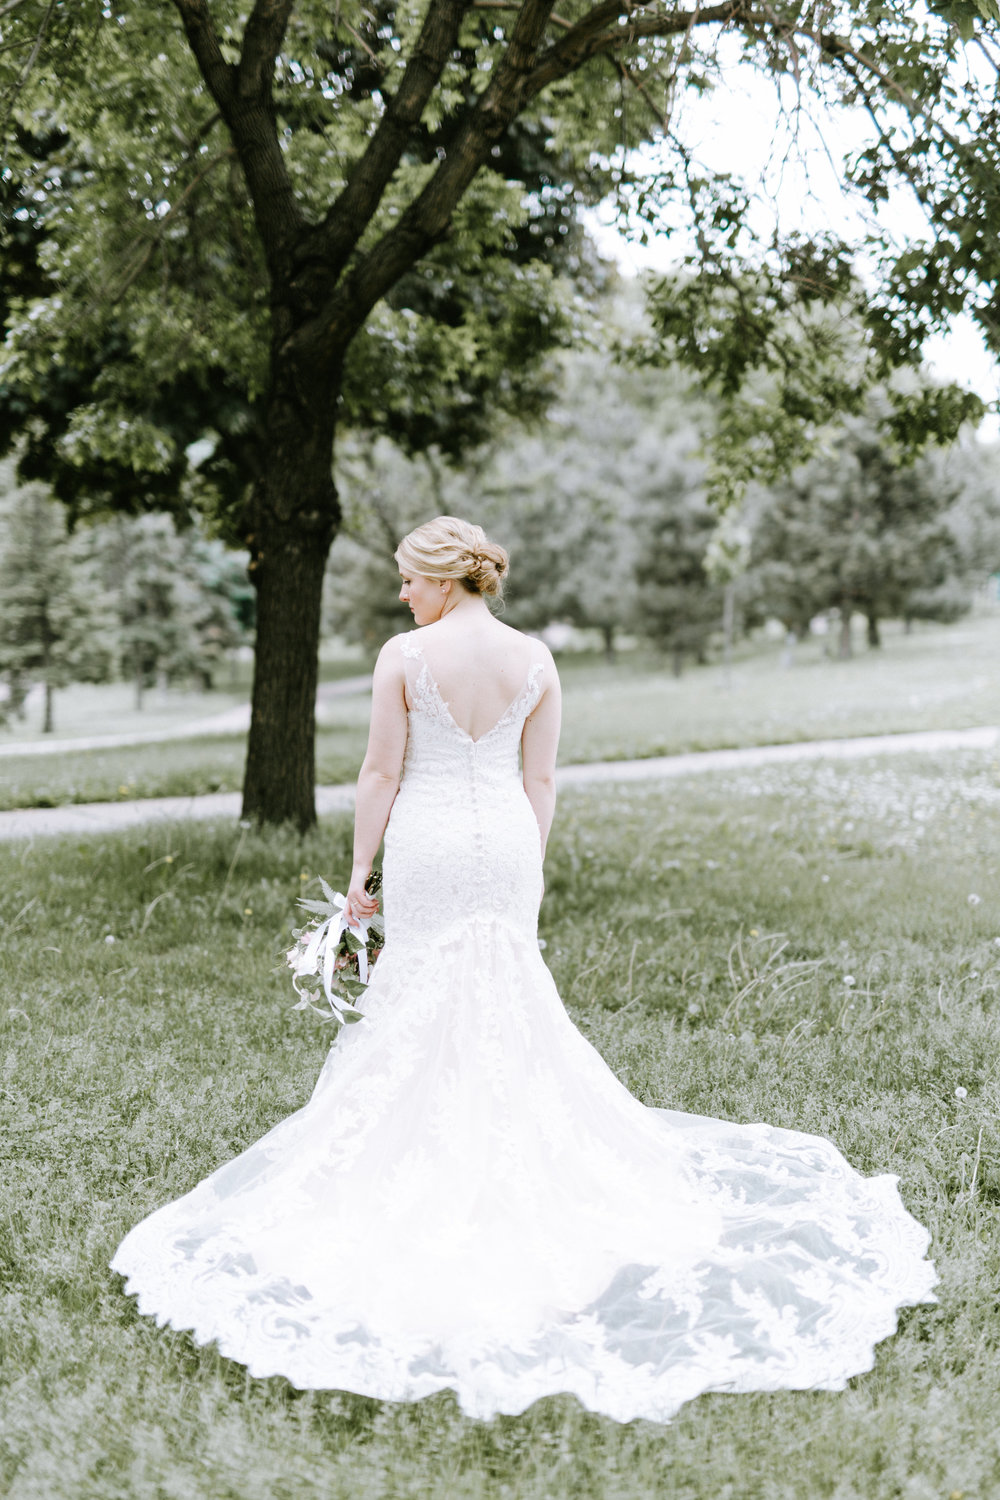 Lydia + Michael Sixpence Events day of coordinating client | Loring Social | Kate Becker Photography | Mann Frau Videography | Minted wedding stationery | bridal gown train with lace overlay